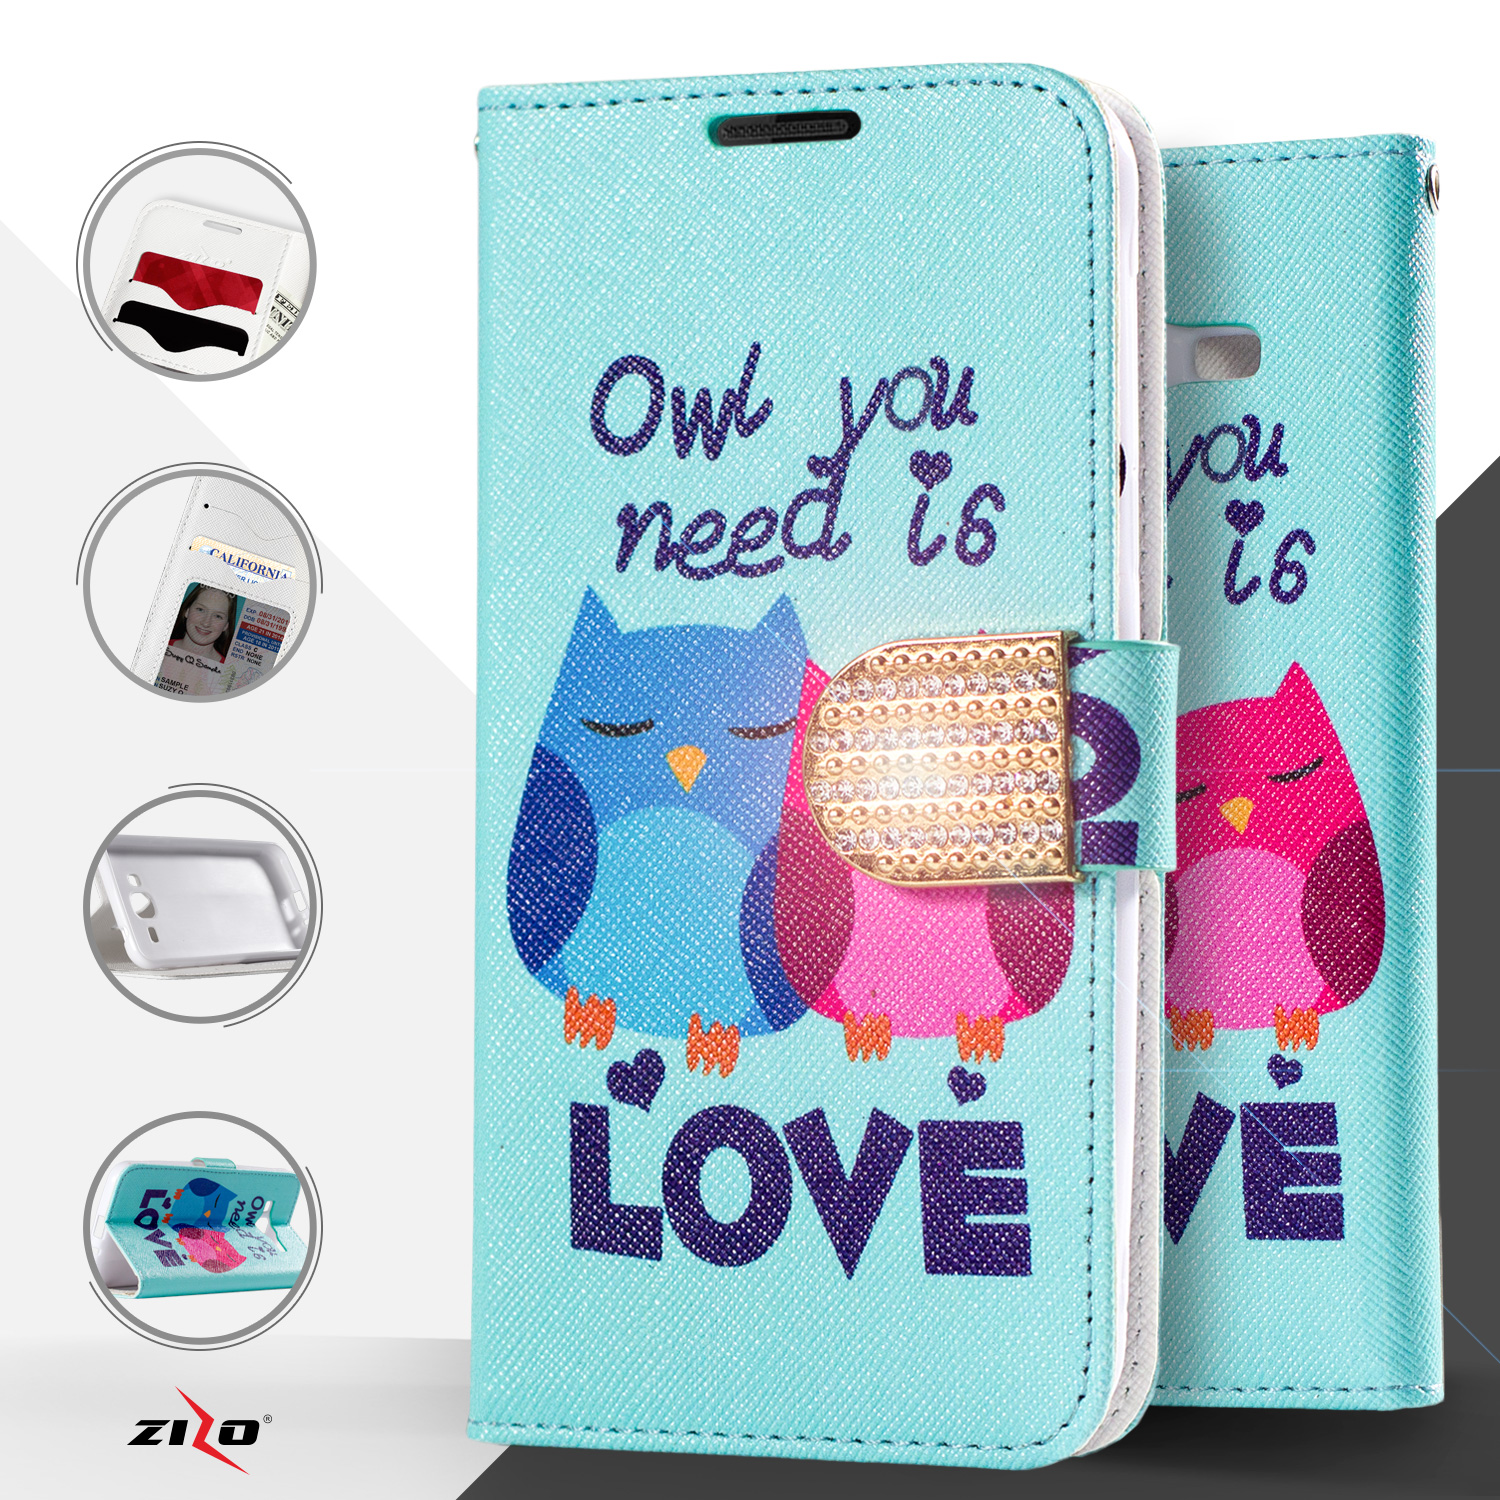 rotate iphone video zizo 174 design wallet pouch for lg spree optimus zone 3 4270